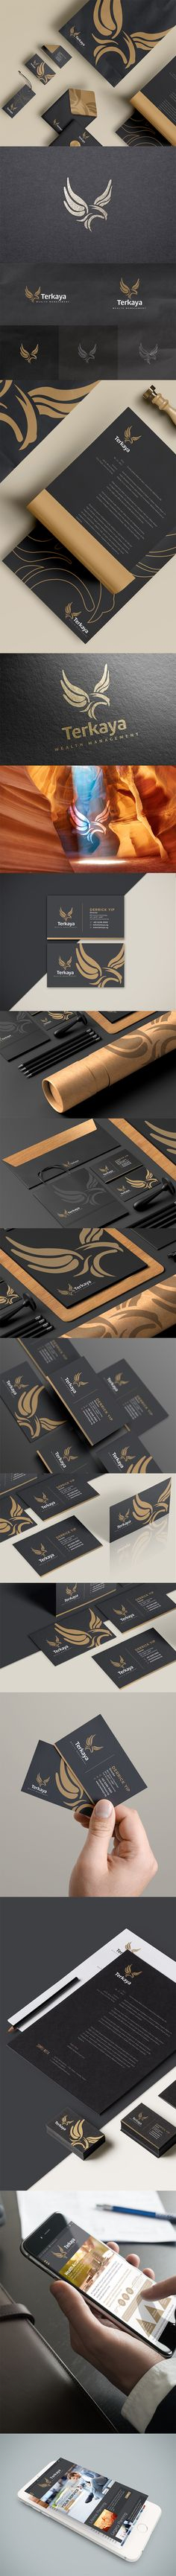 A branding project for Terkaya Wealth Management which is based in Singapore. Terkaya Wealth Management specializes in legacy planning and lifeline financial planning. #branding #logo #businesscard #logotype #falcon #investment #pantone #grey #dark #brand #letterhead #mockup More preview at   https://www.behance.net/gallery/28794903/Terkaya-wealth-management-branding http://www.lemongraphic.sg/2015/08/18/terkaya-wealth-management-branding/